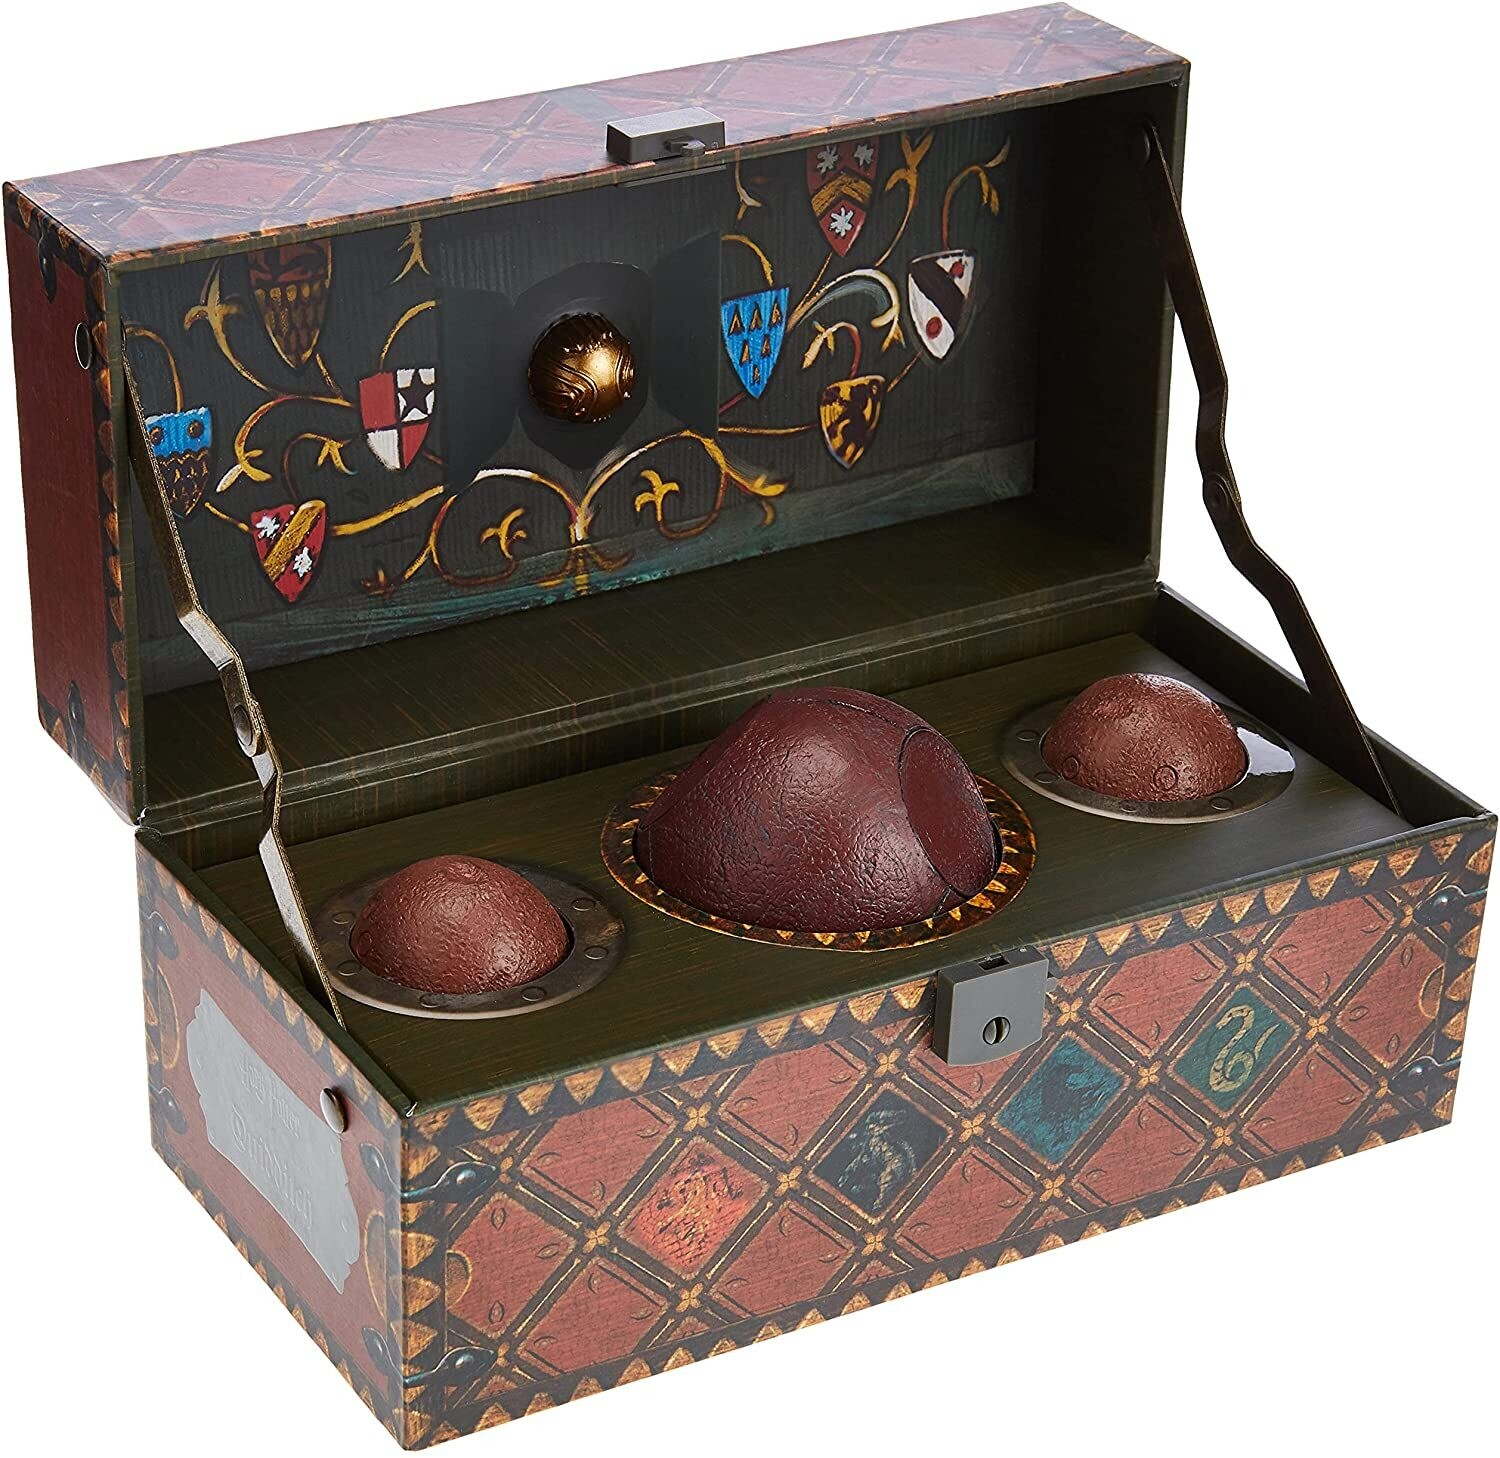 Harry Potter: Collectible Quidditch Set - Movie Prop Replica Accessory